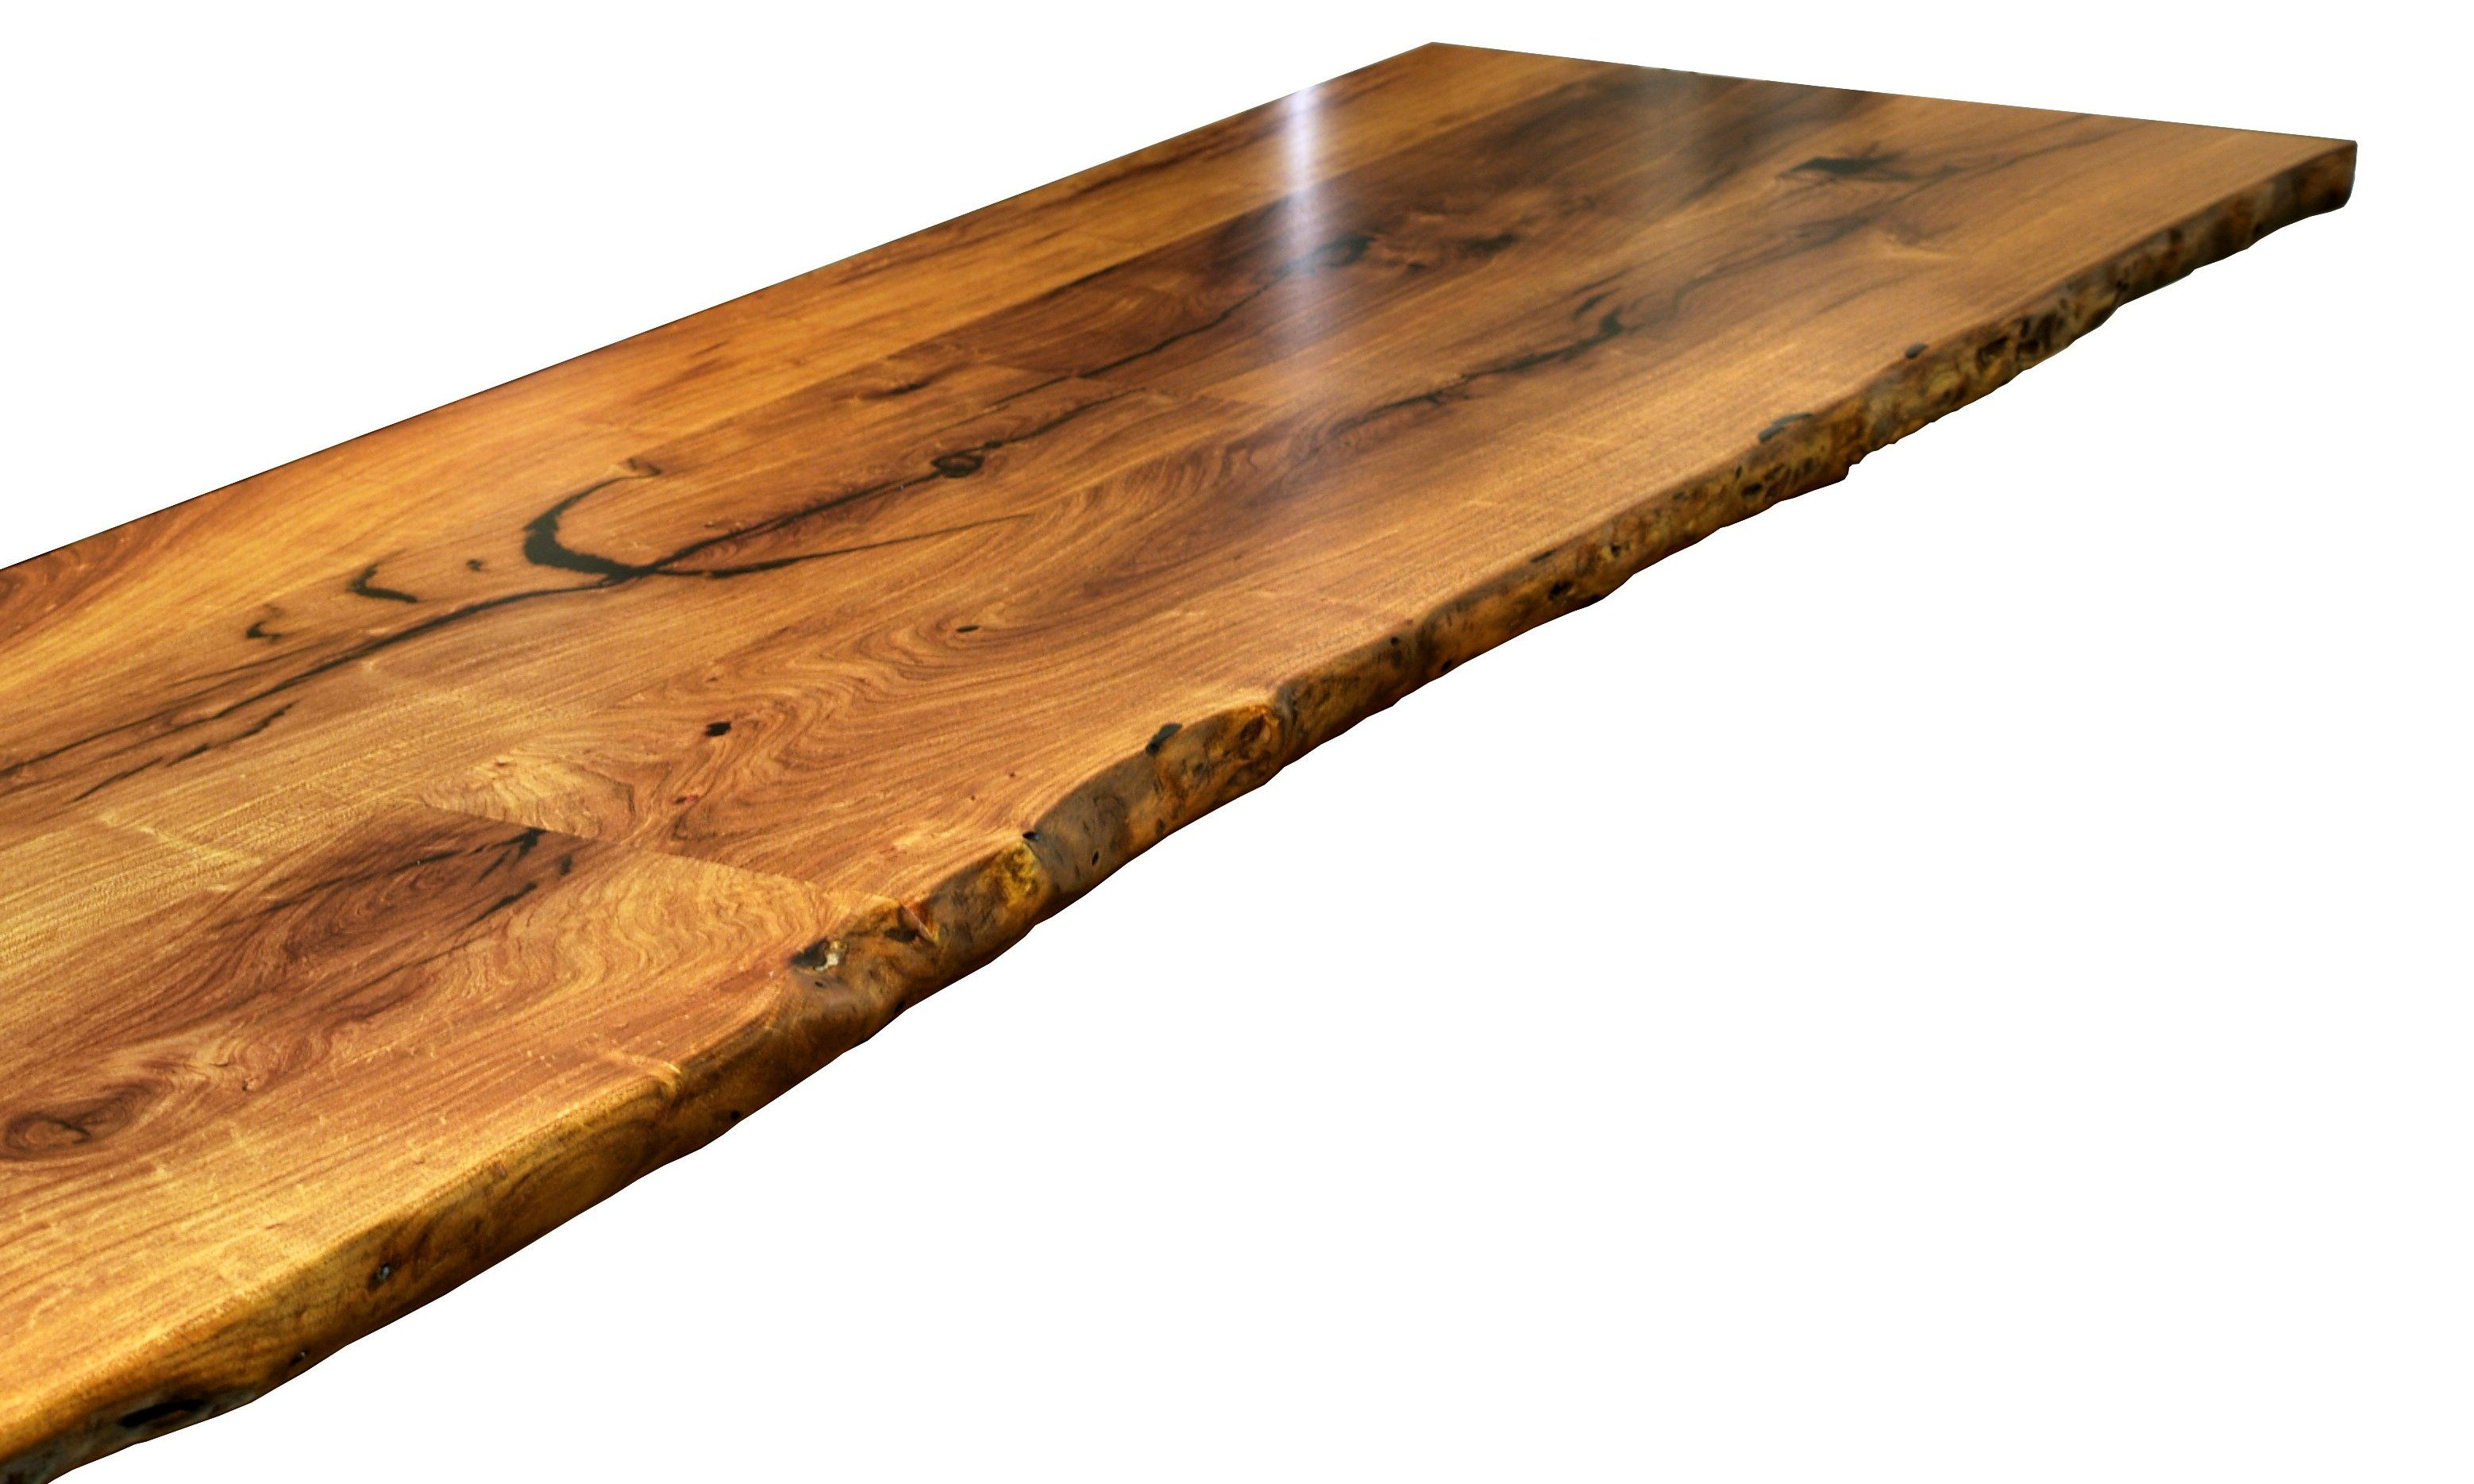 custom and wood citrus table pecan on edges designing top a countertops finish natural oil slab tung tops with wane